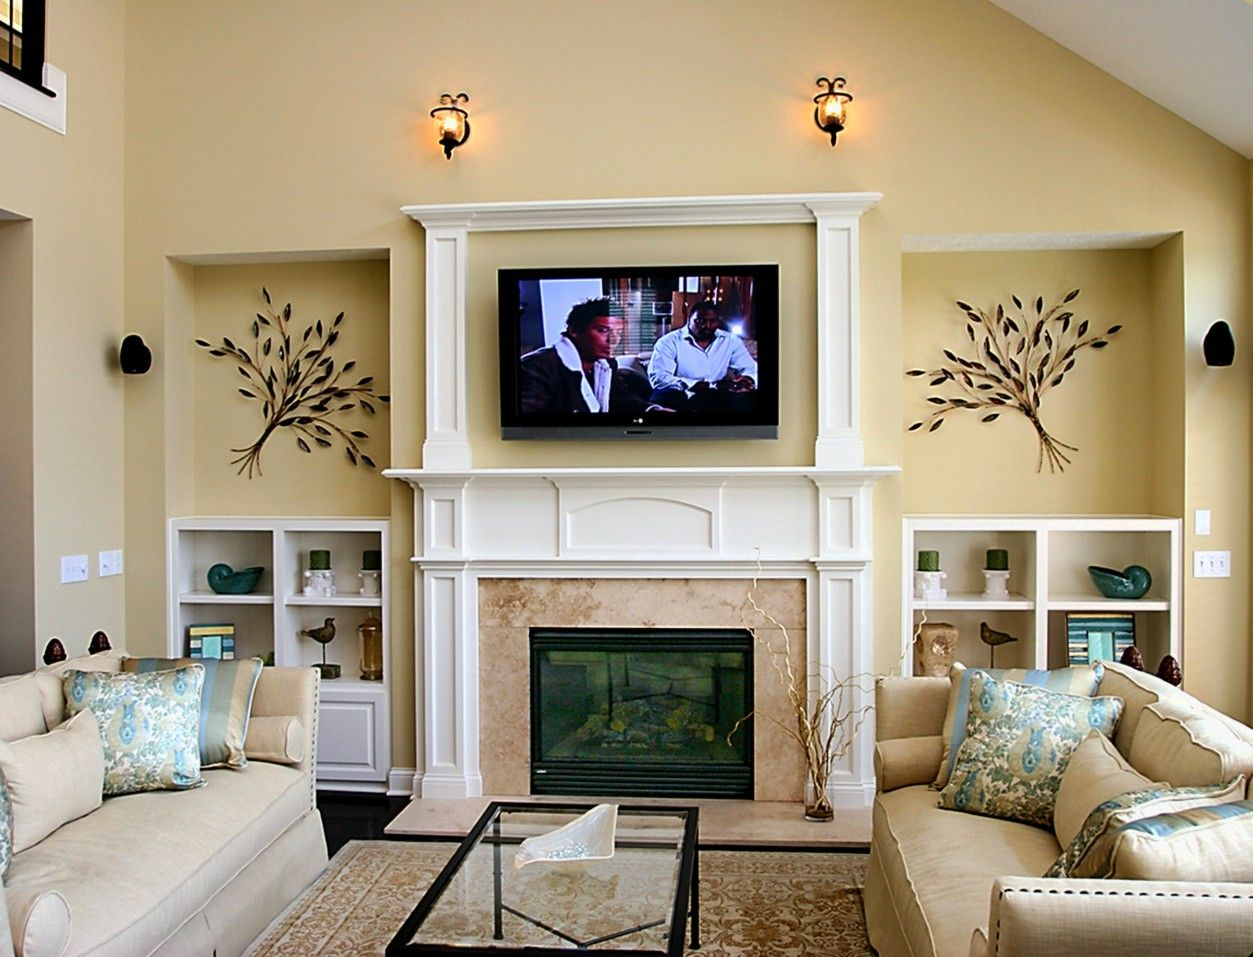 Living Room Furniture Layout With Fireplace And Tv On Opposite